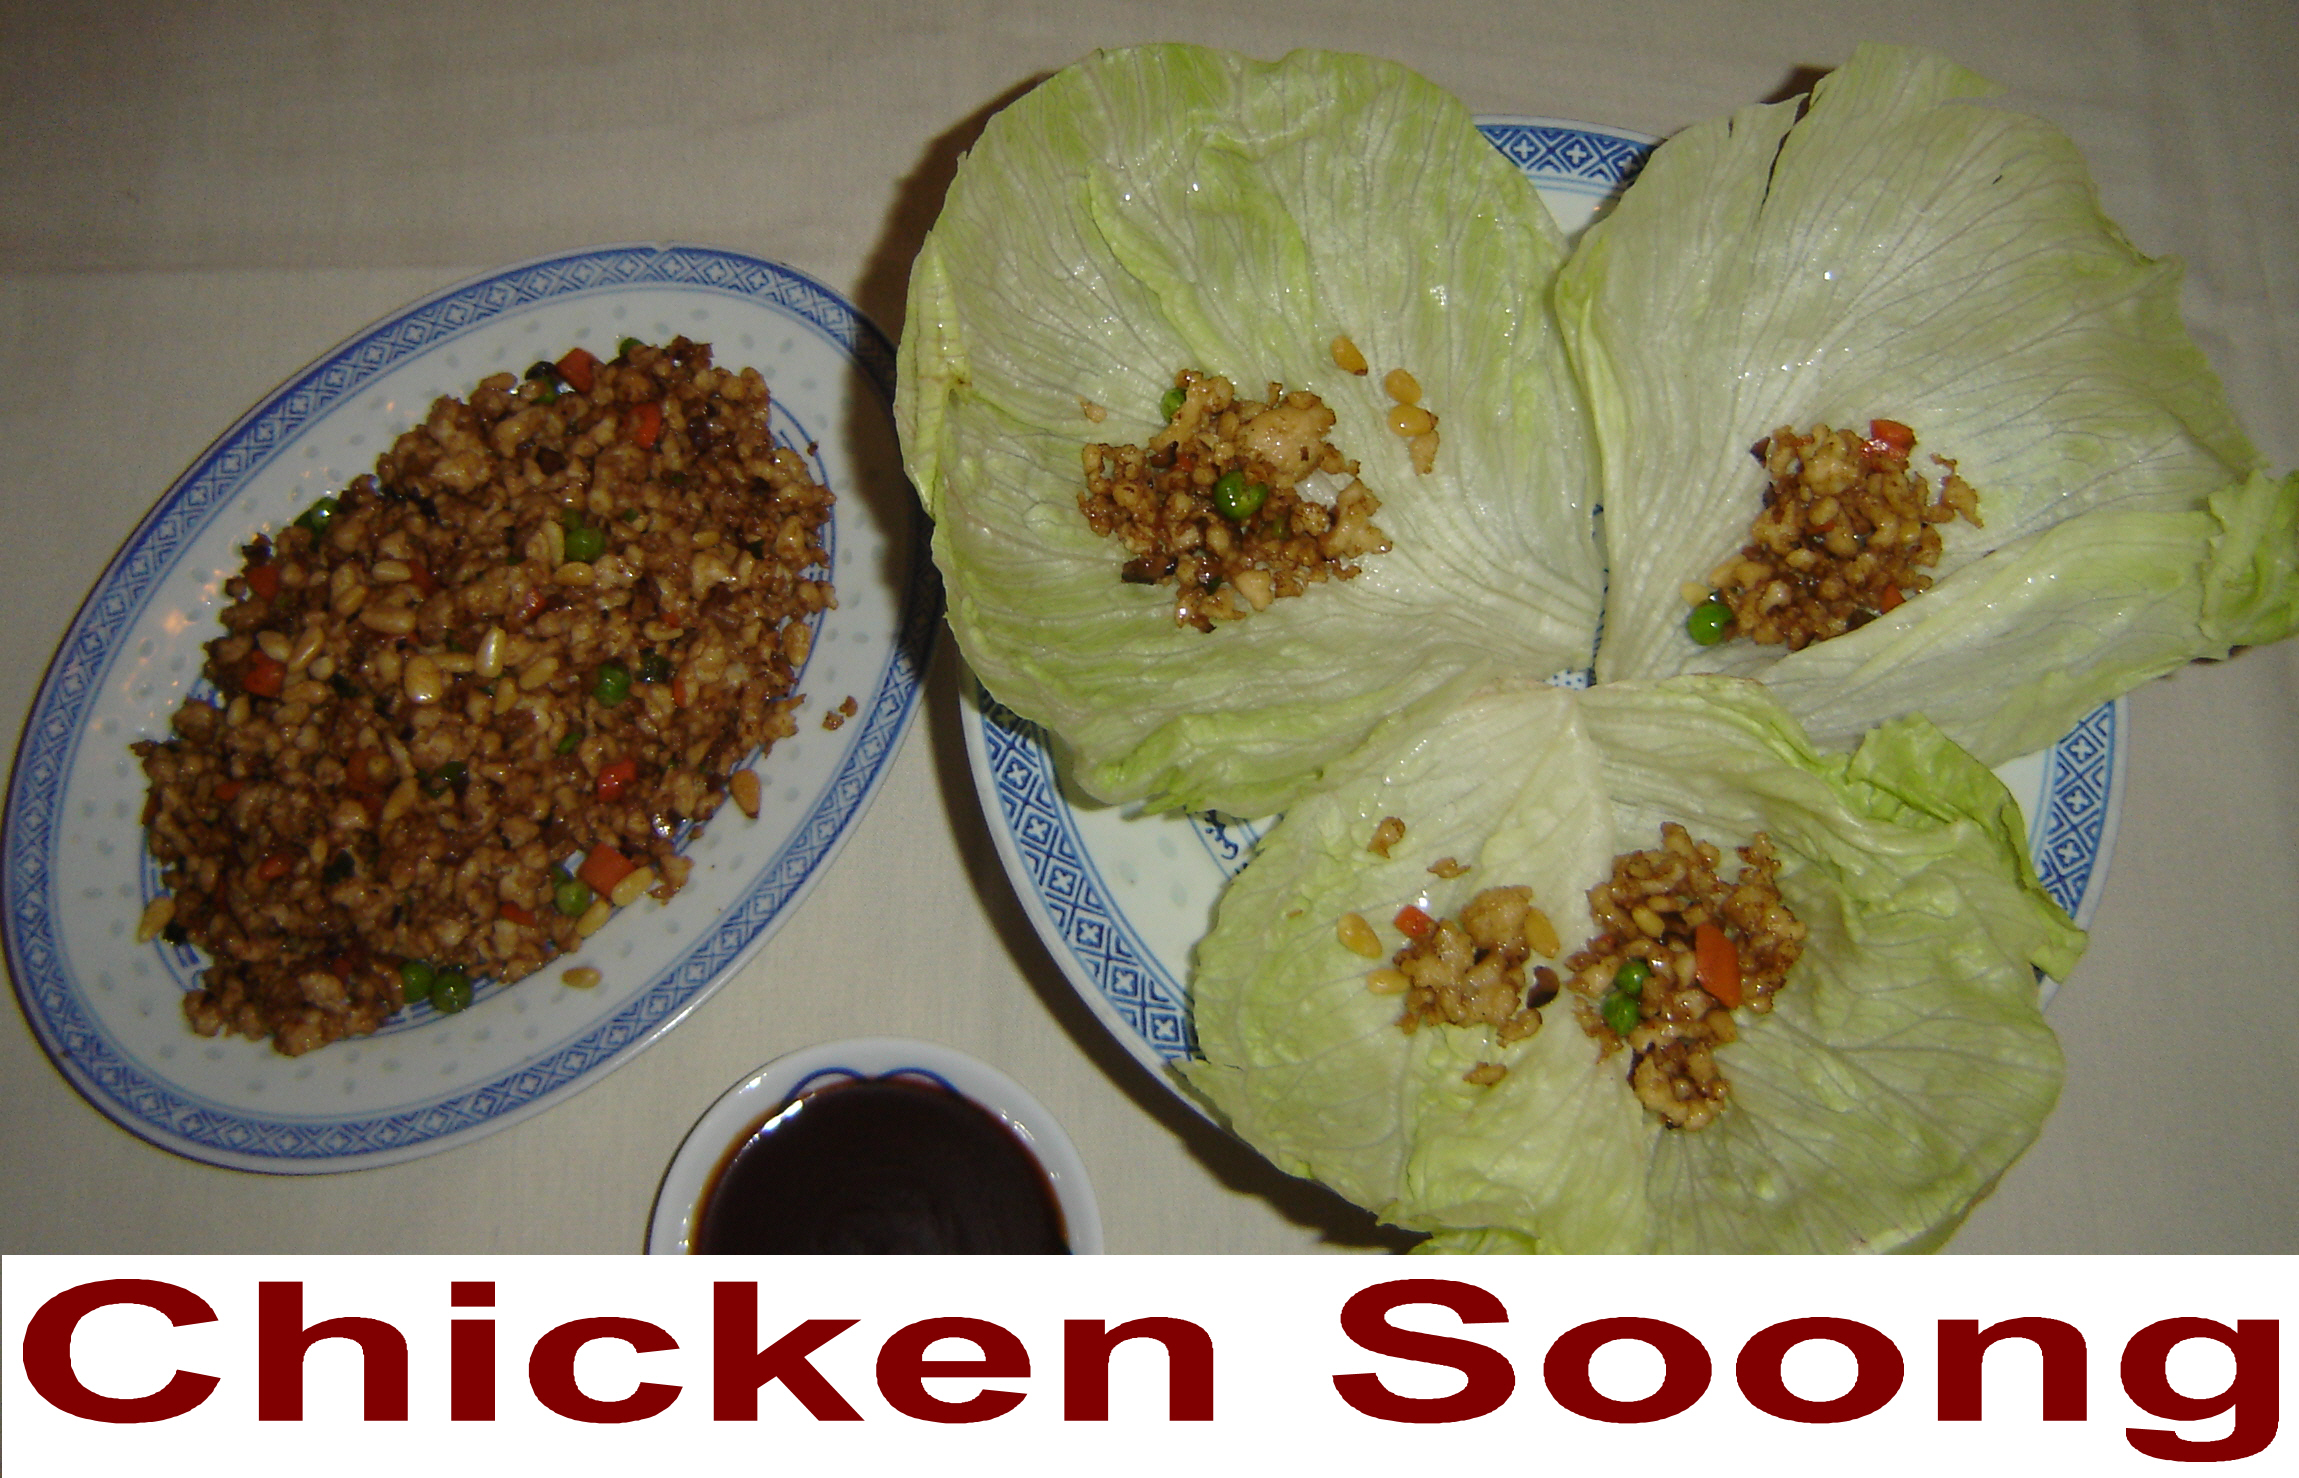 Chicken Soong (4 lettuce wraps)